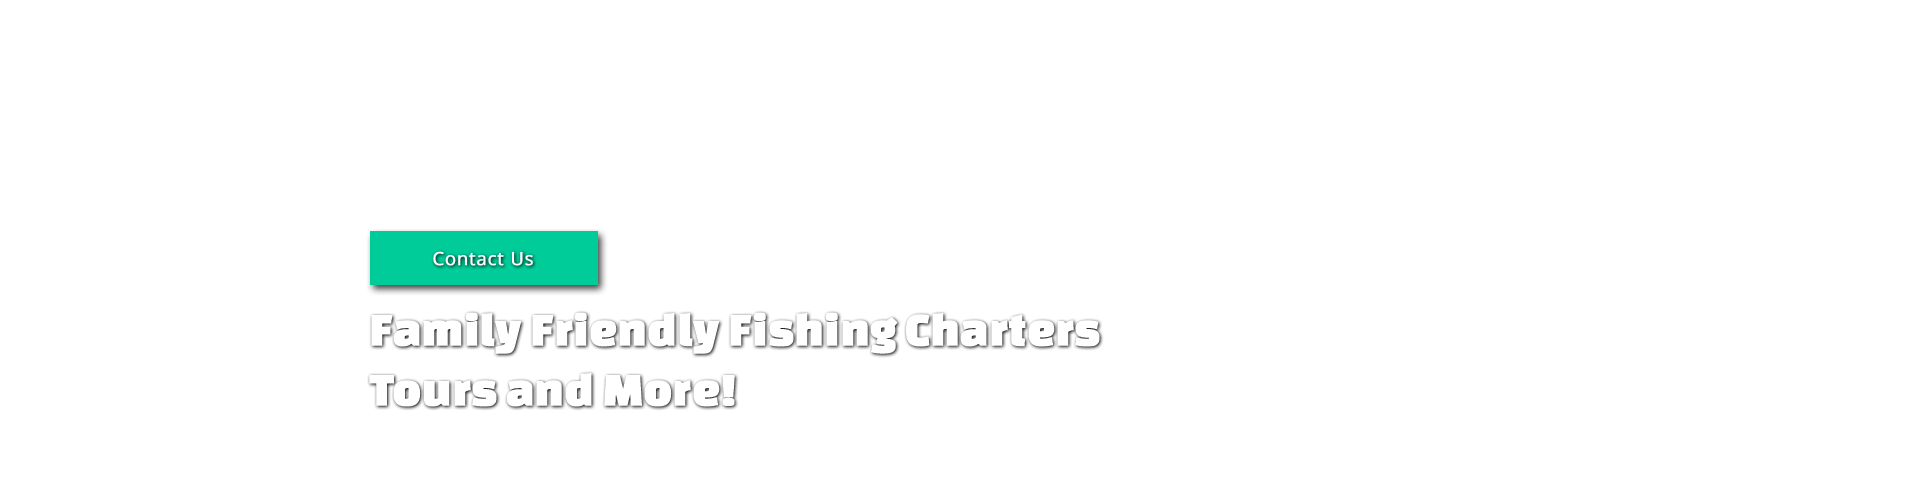 Family friendly fishing charters, tours and more!